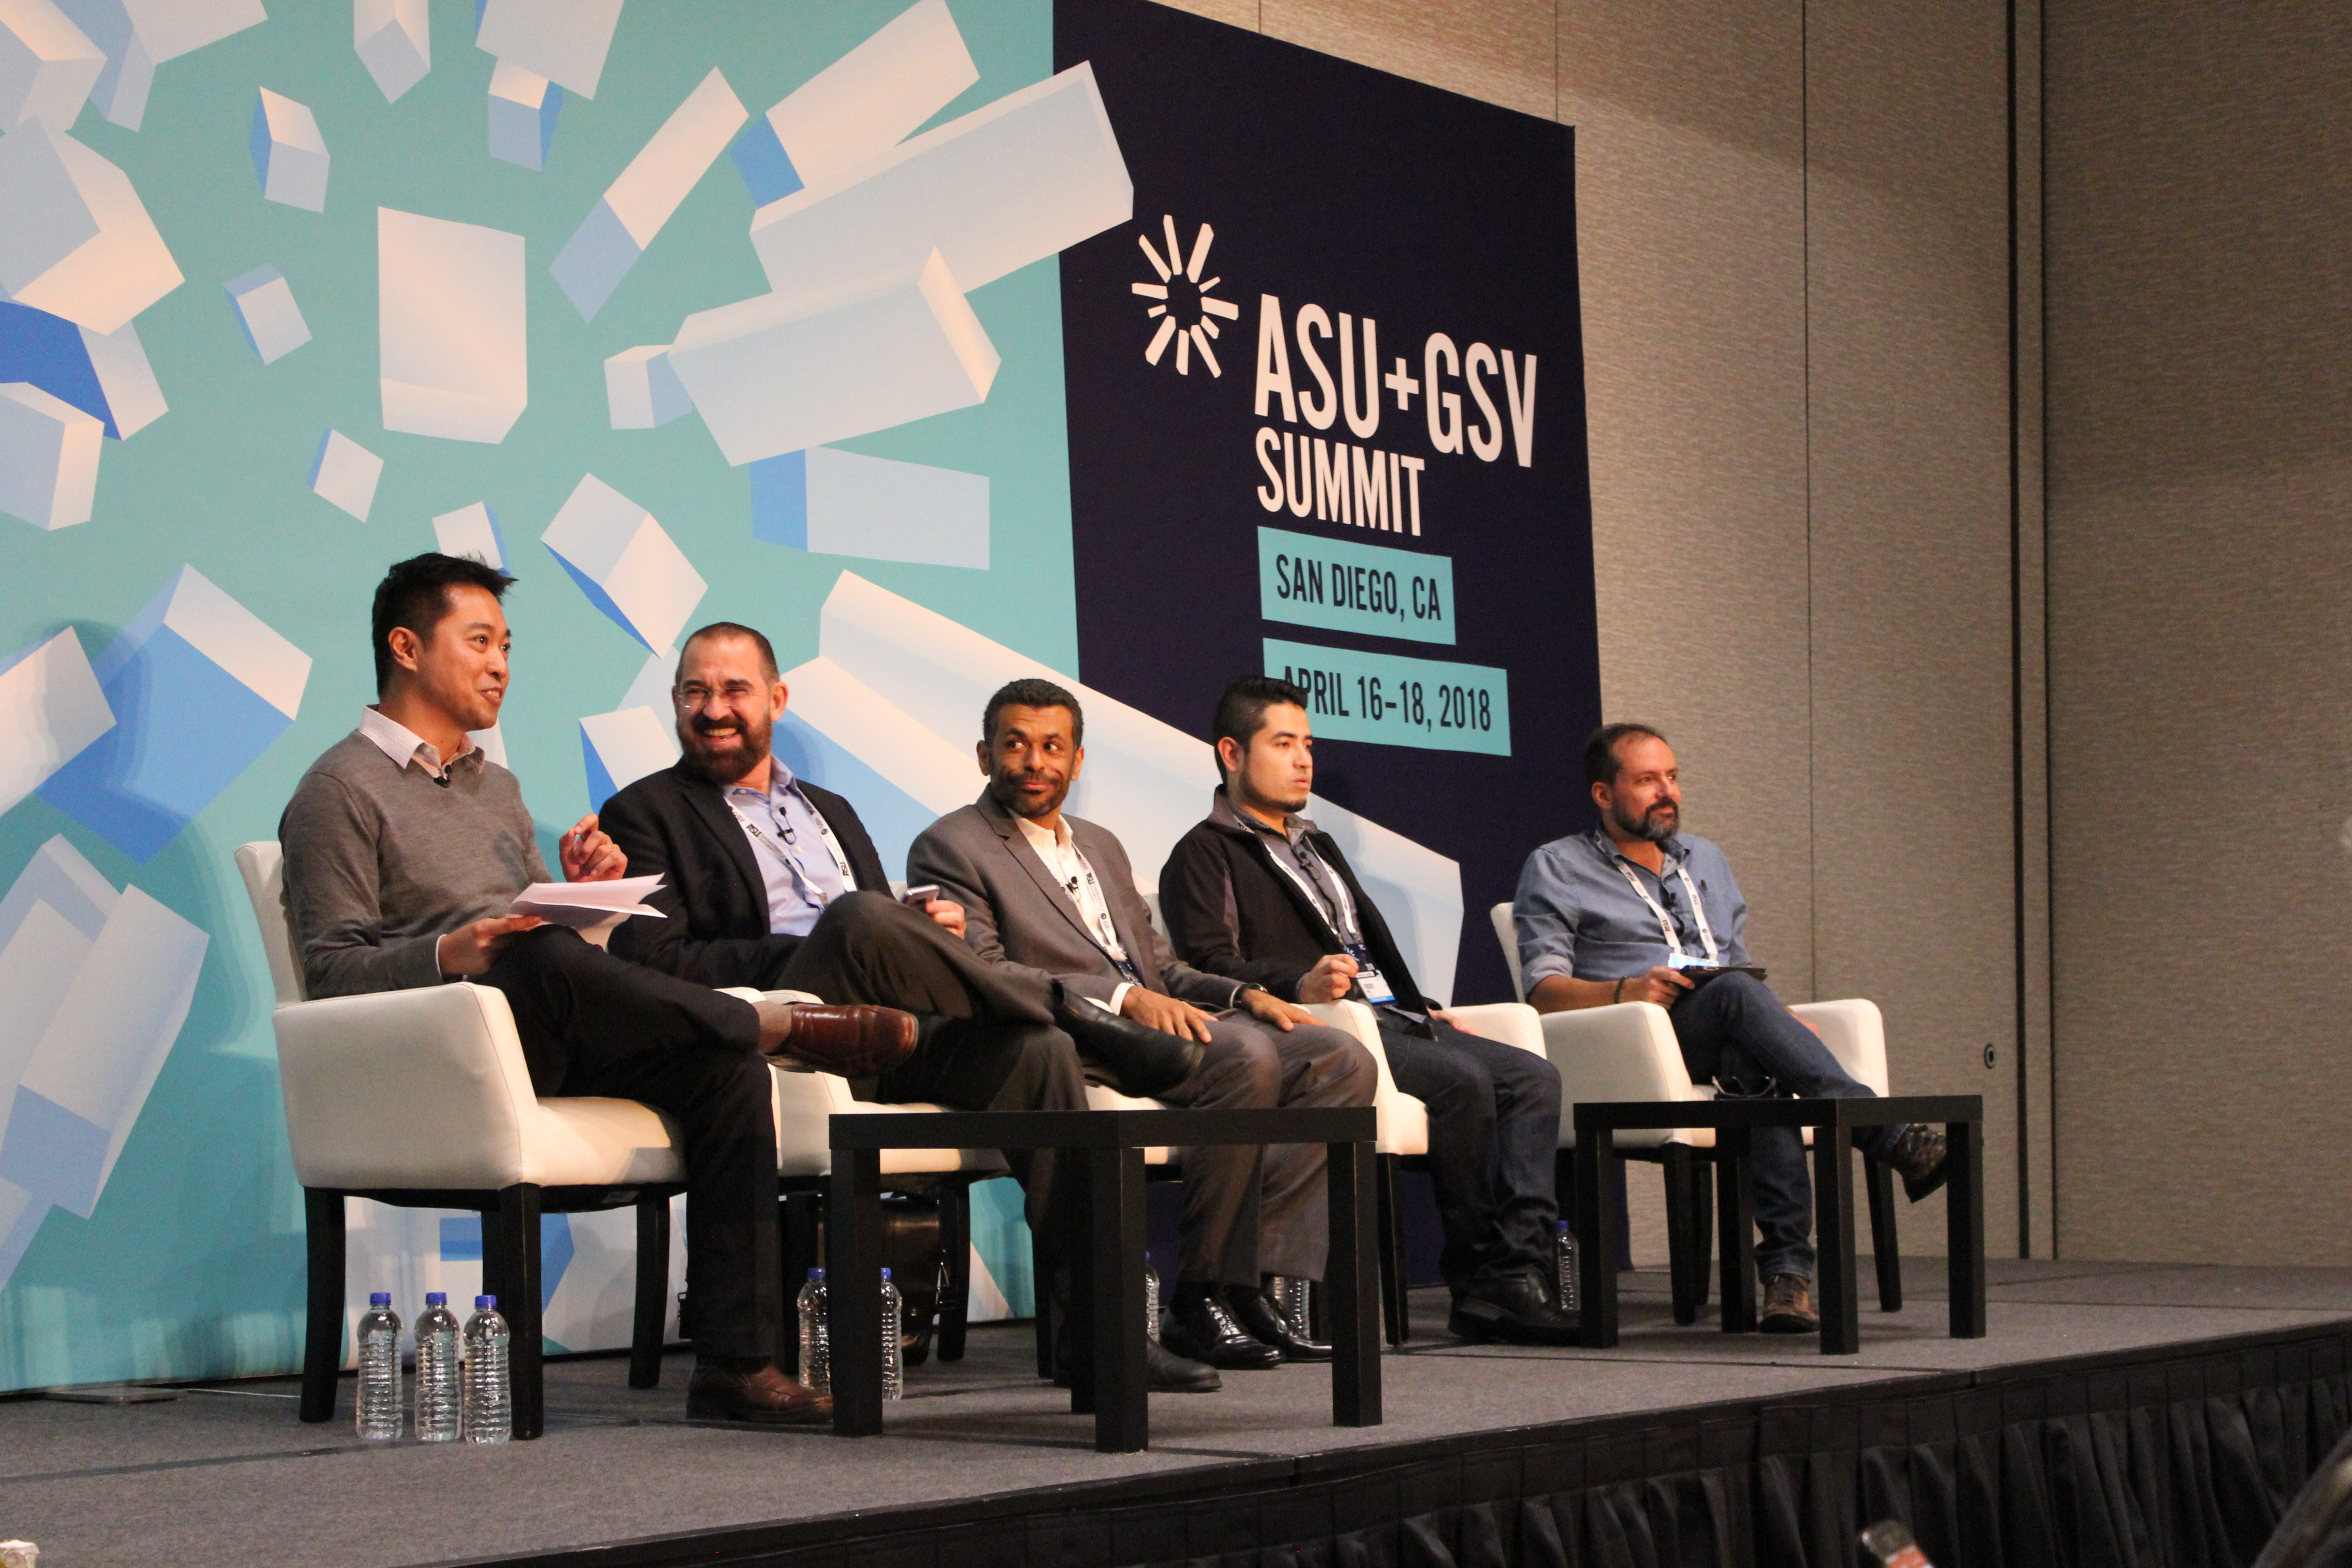 Asu gsv summit reinvent education today for tomorrows jobs workforce development and education solutions were discussed at the asu gsv 2018 summit in san malvernweather Gallery